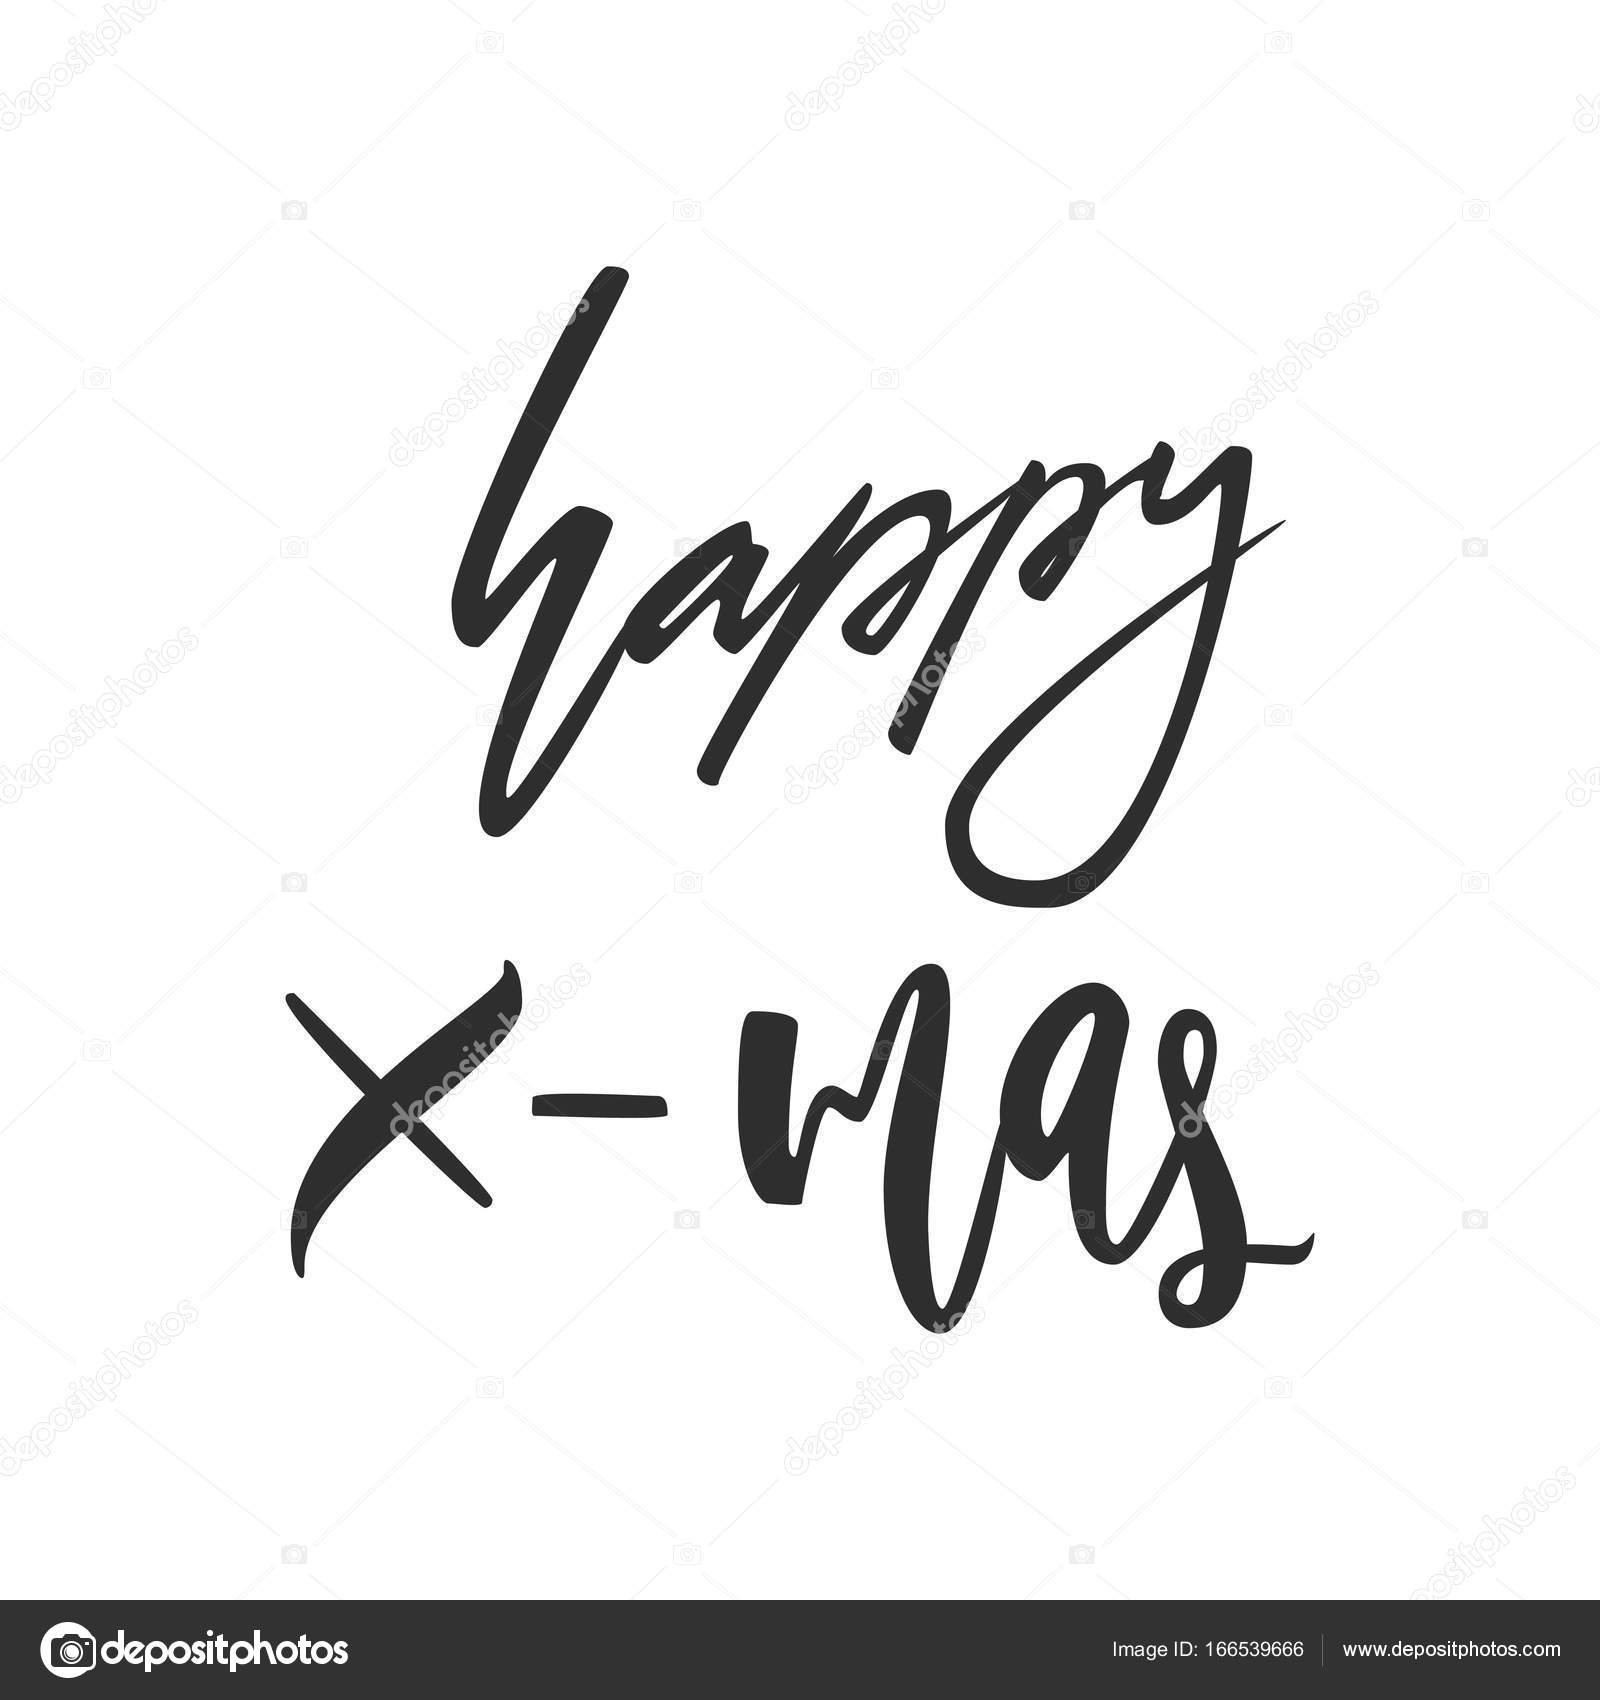 Happy X Mas Greeting Card Black And White Hand Drawn Lettering